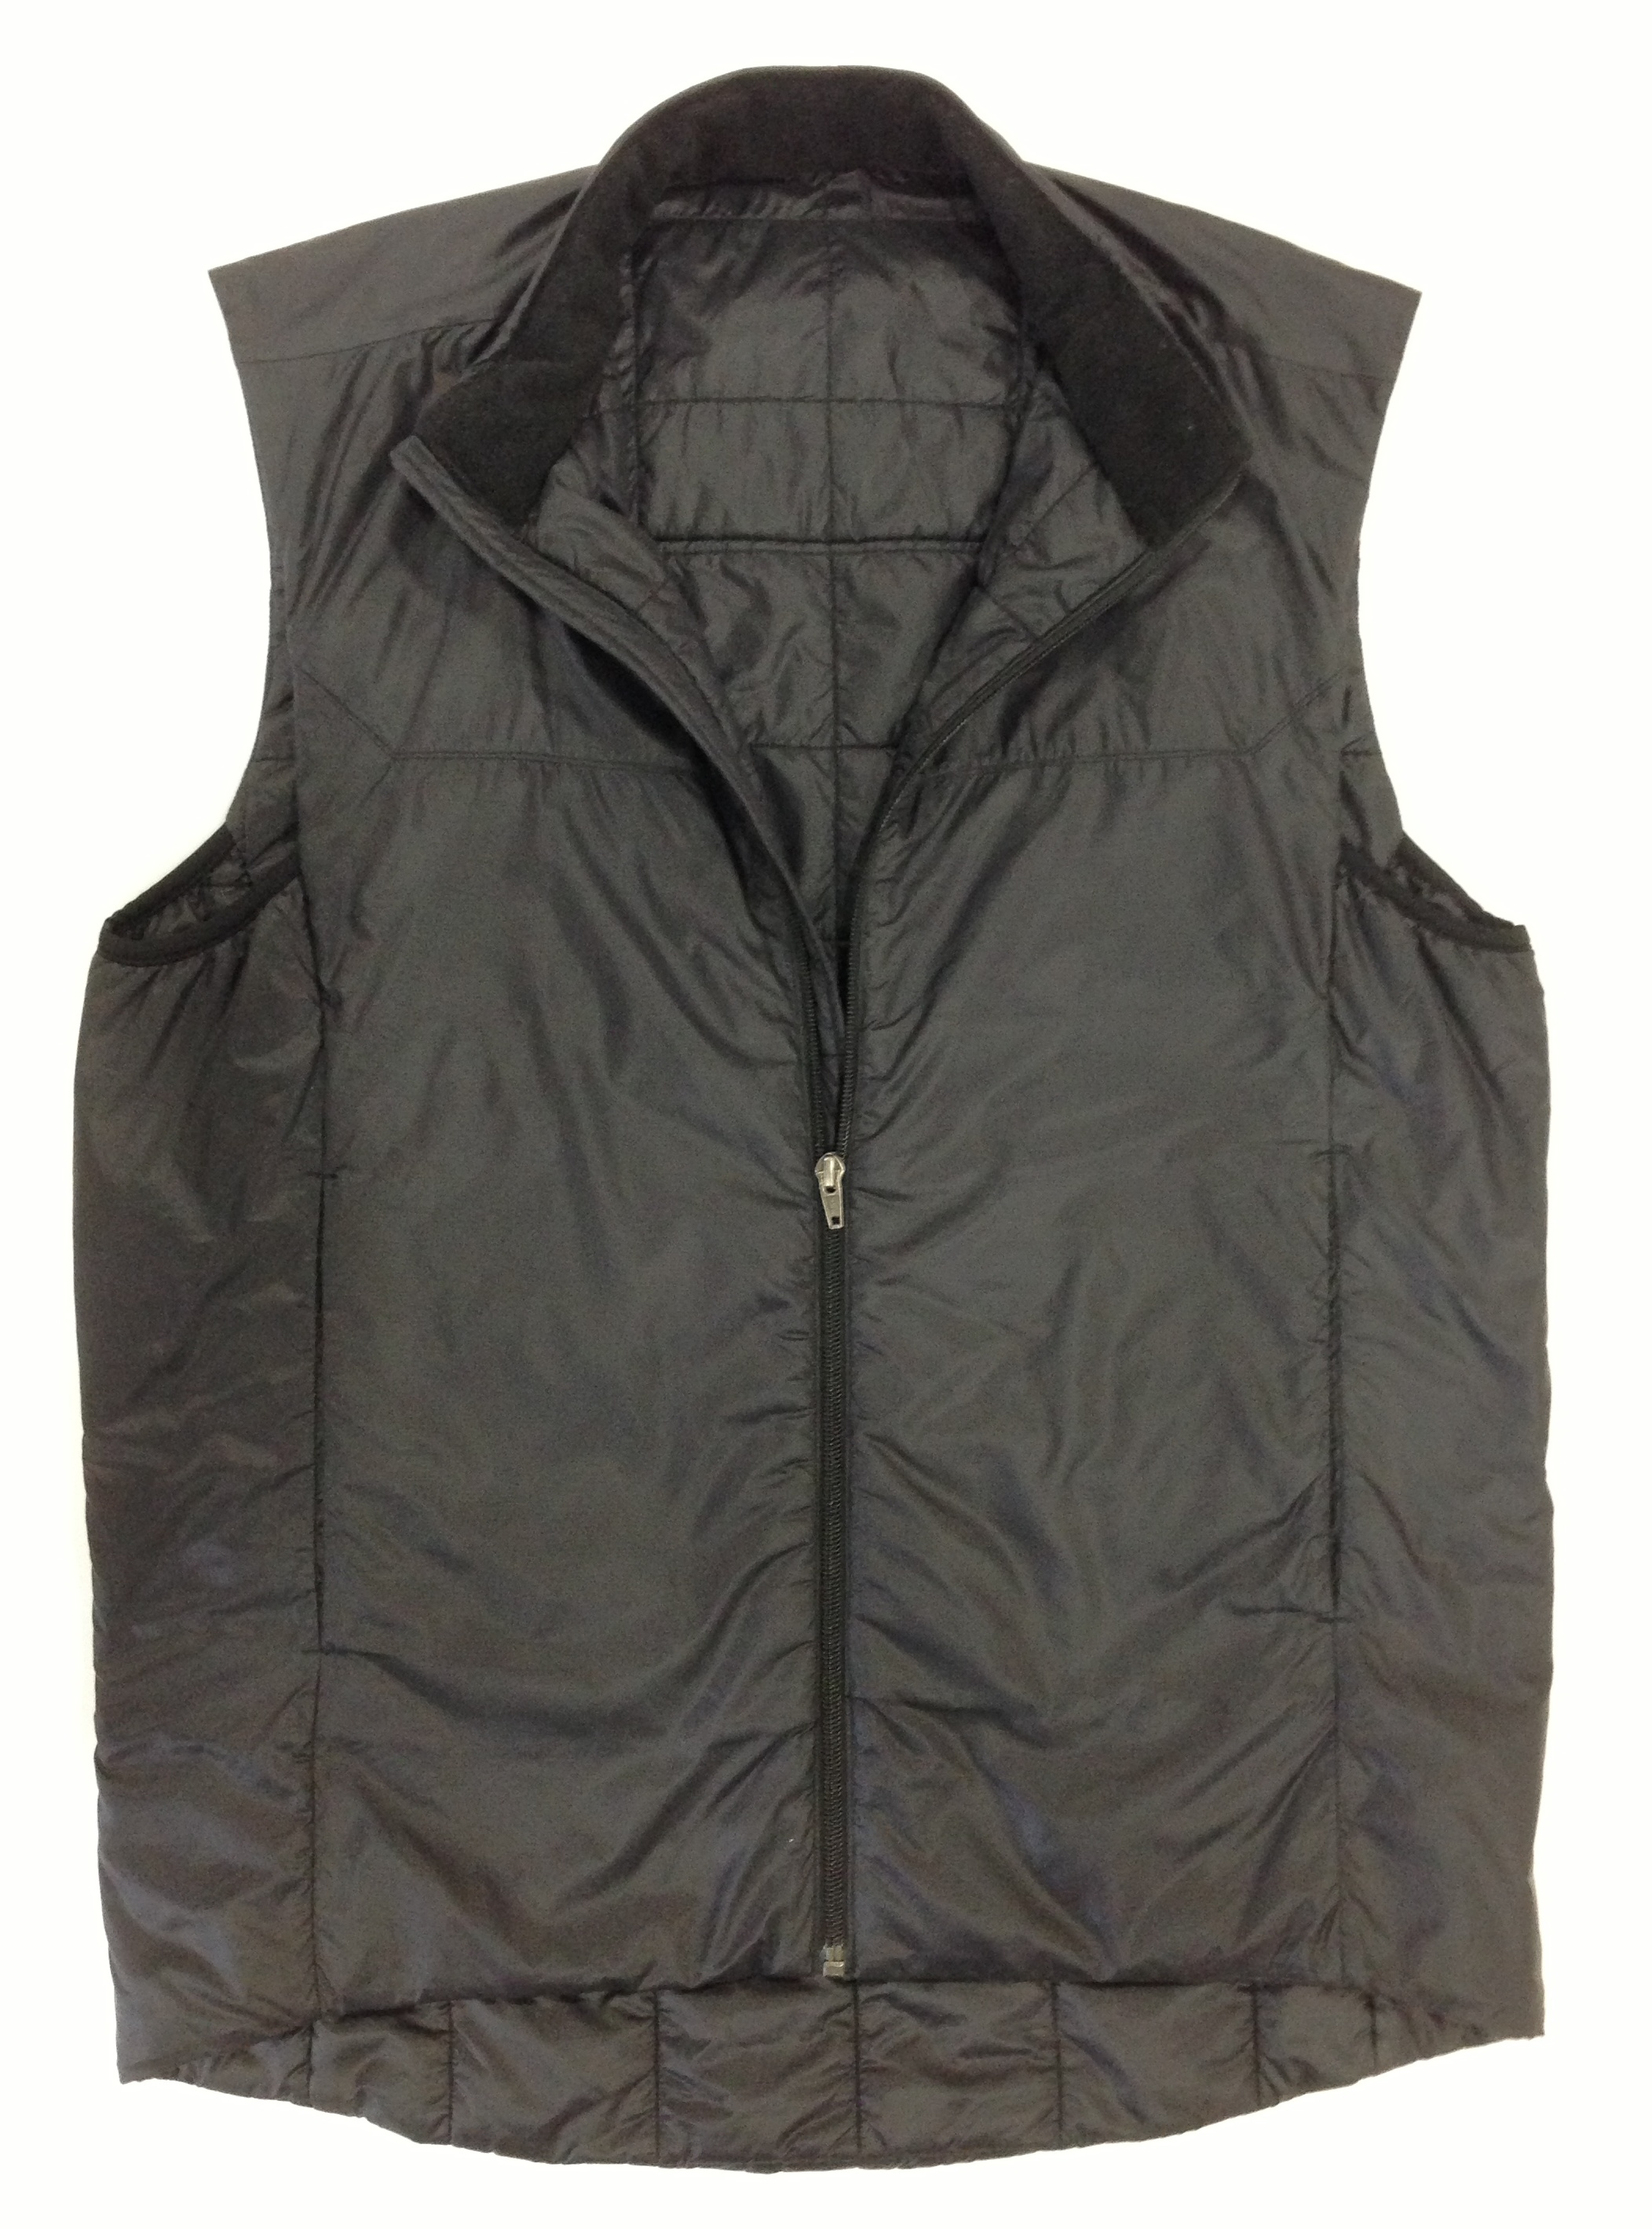 Men's Black Nylon RipStop Vest